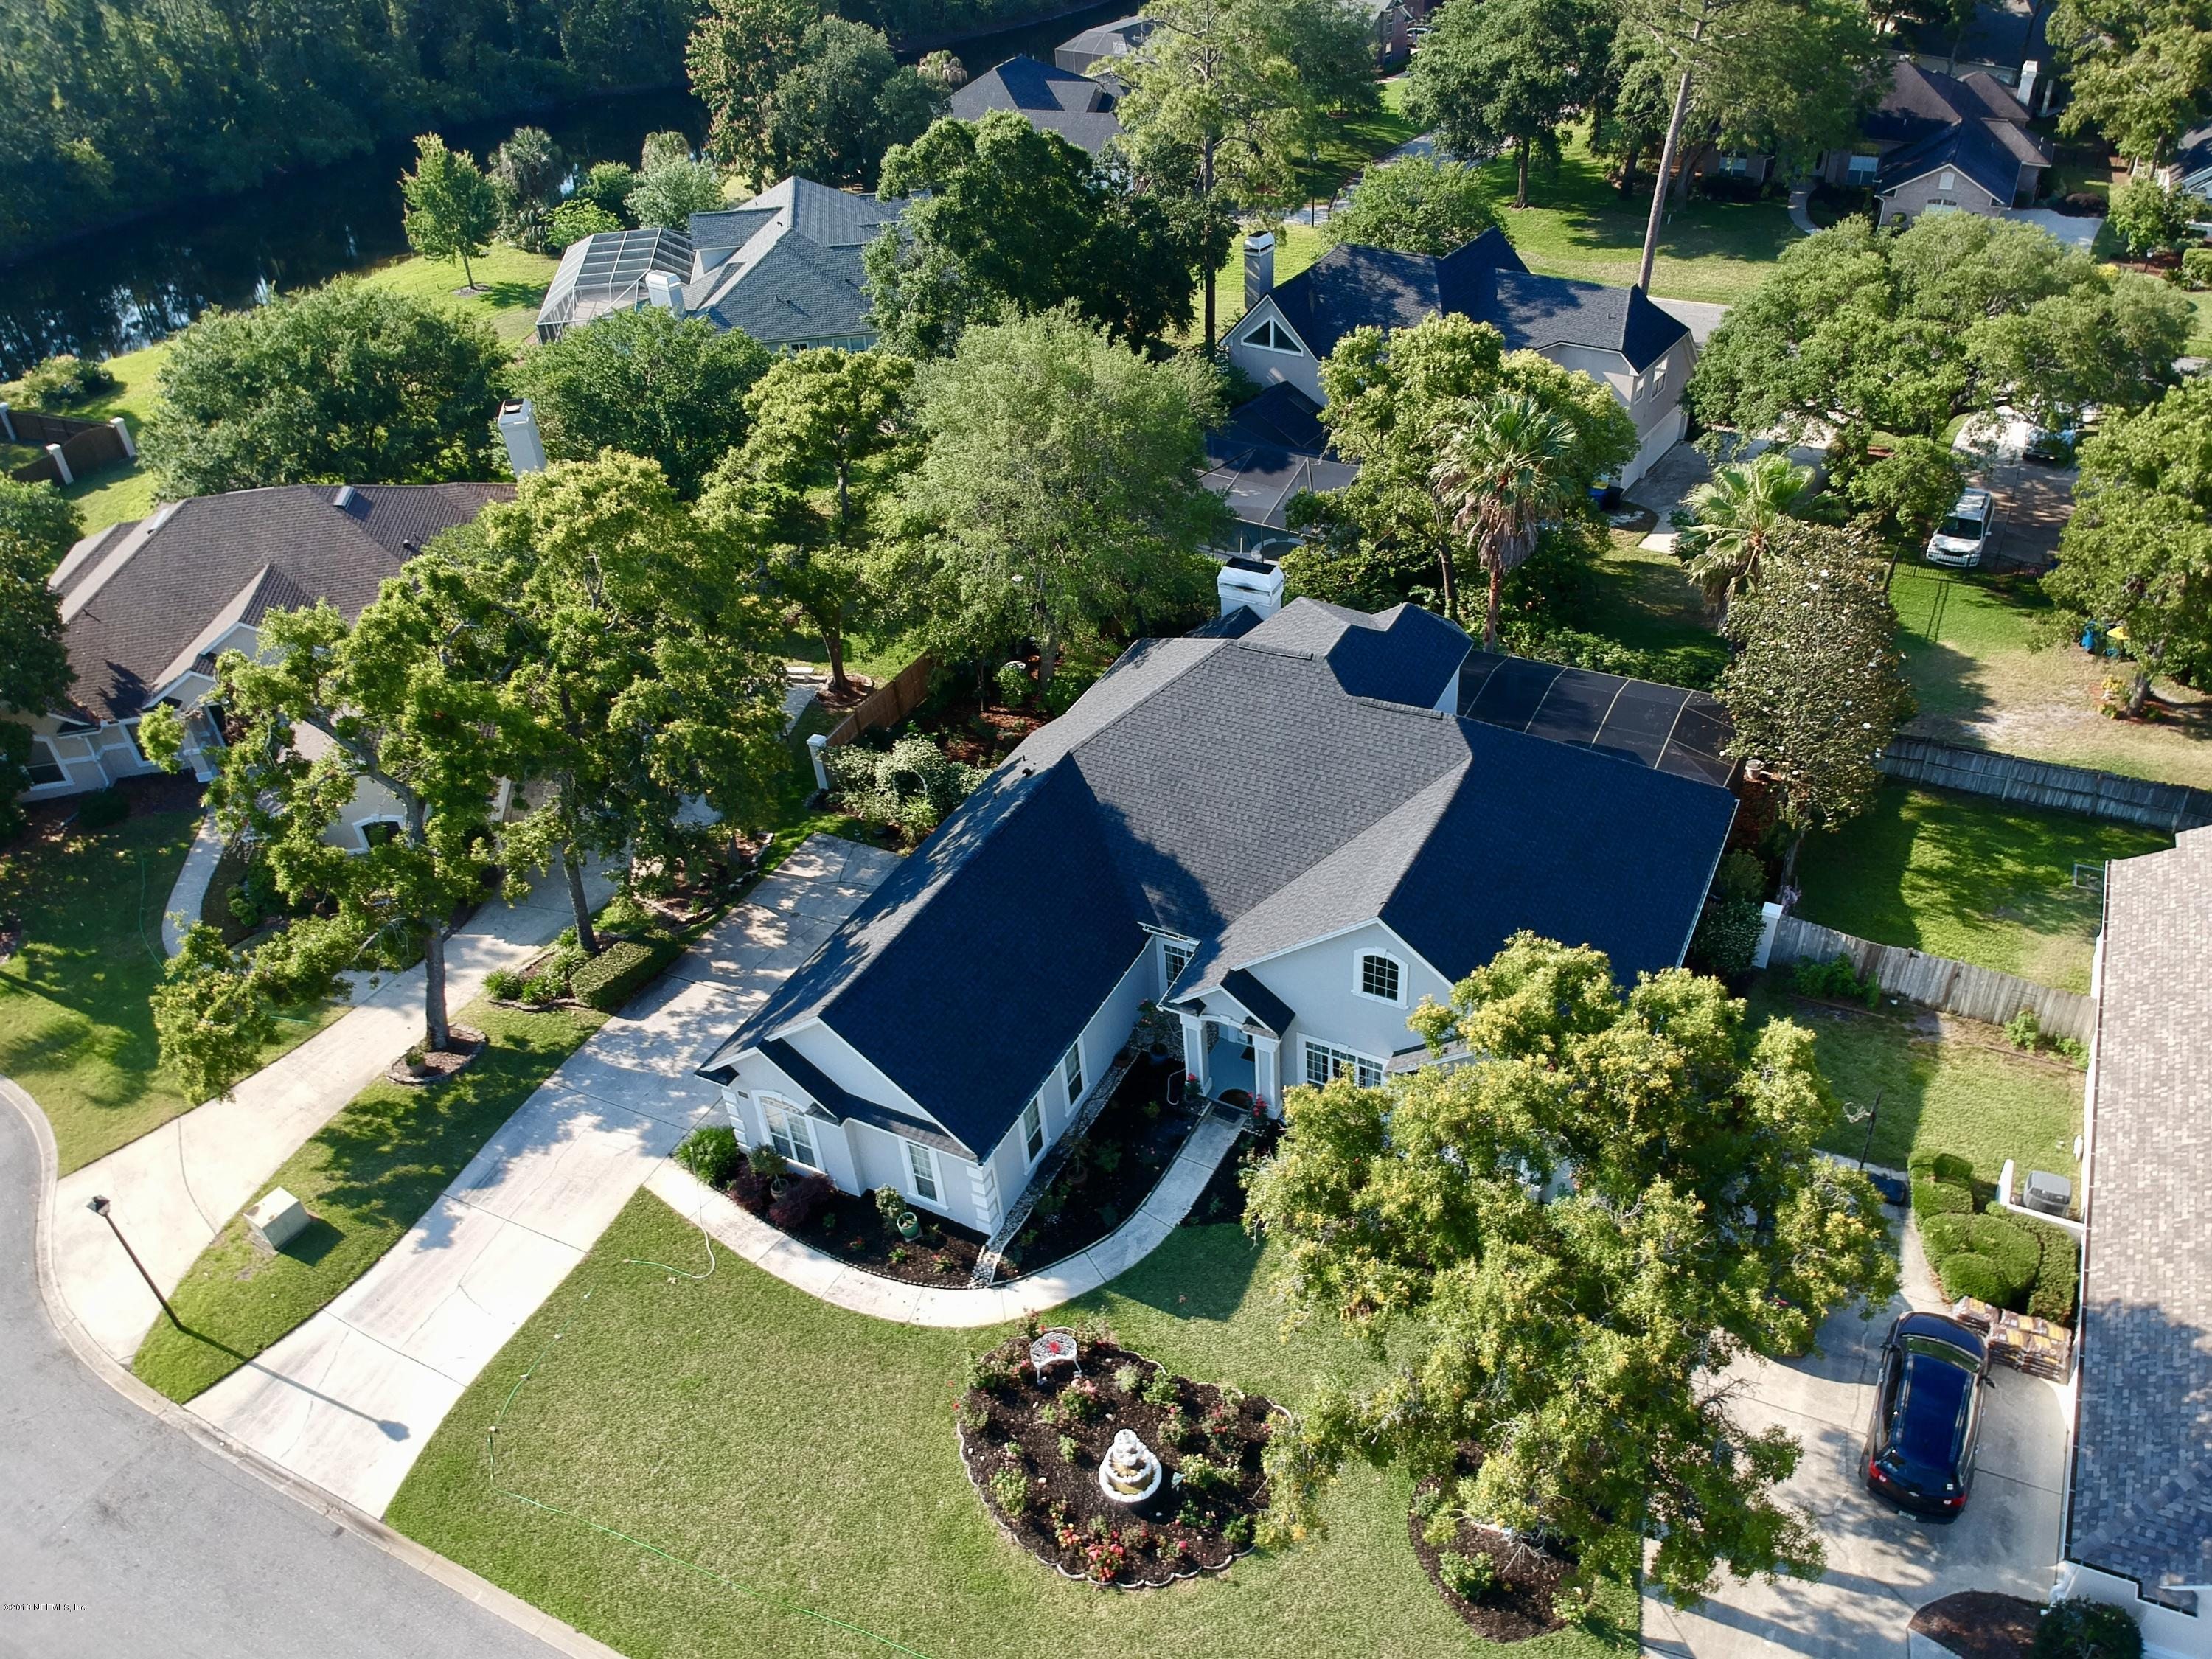 12906 OAKLAND HILLS, JACKSONVILLE, FLORIDA 32225, 5 Bedrooms Bedrooms, ,3 BathroomsBathrooms,Residential - single family,For sale,OAKLAND HILLS,935762